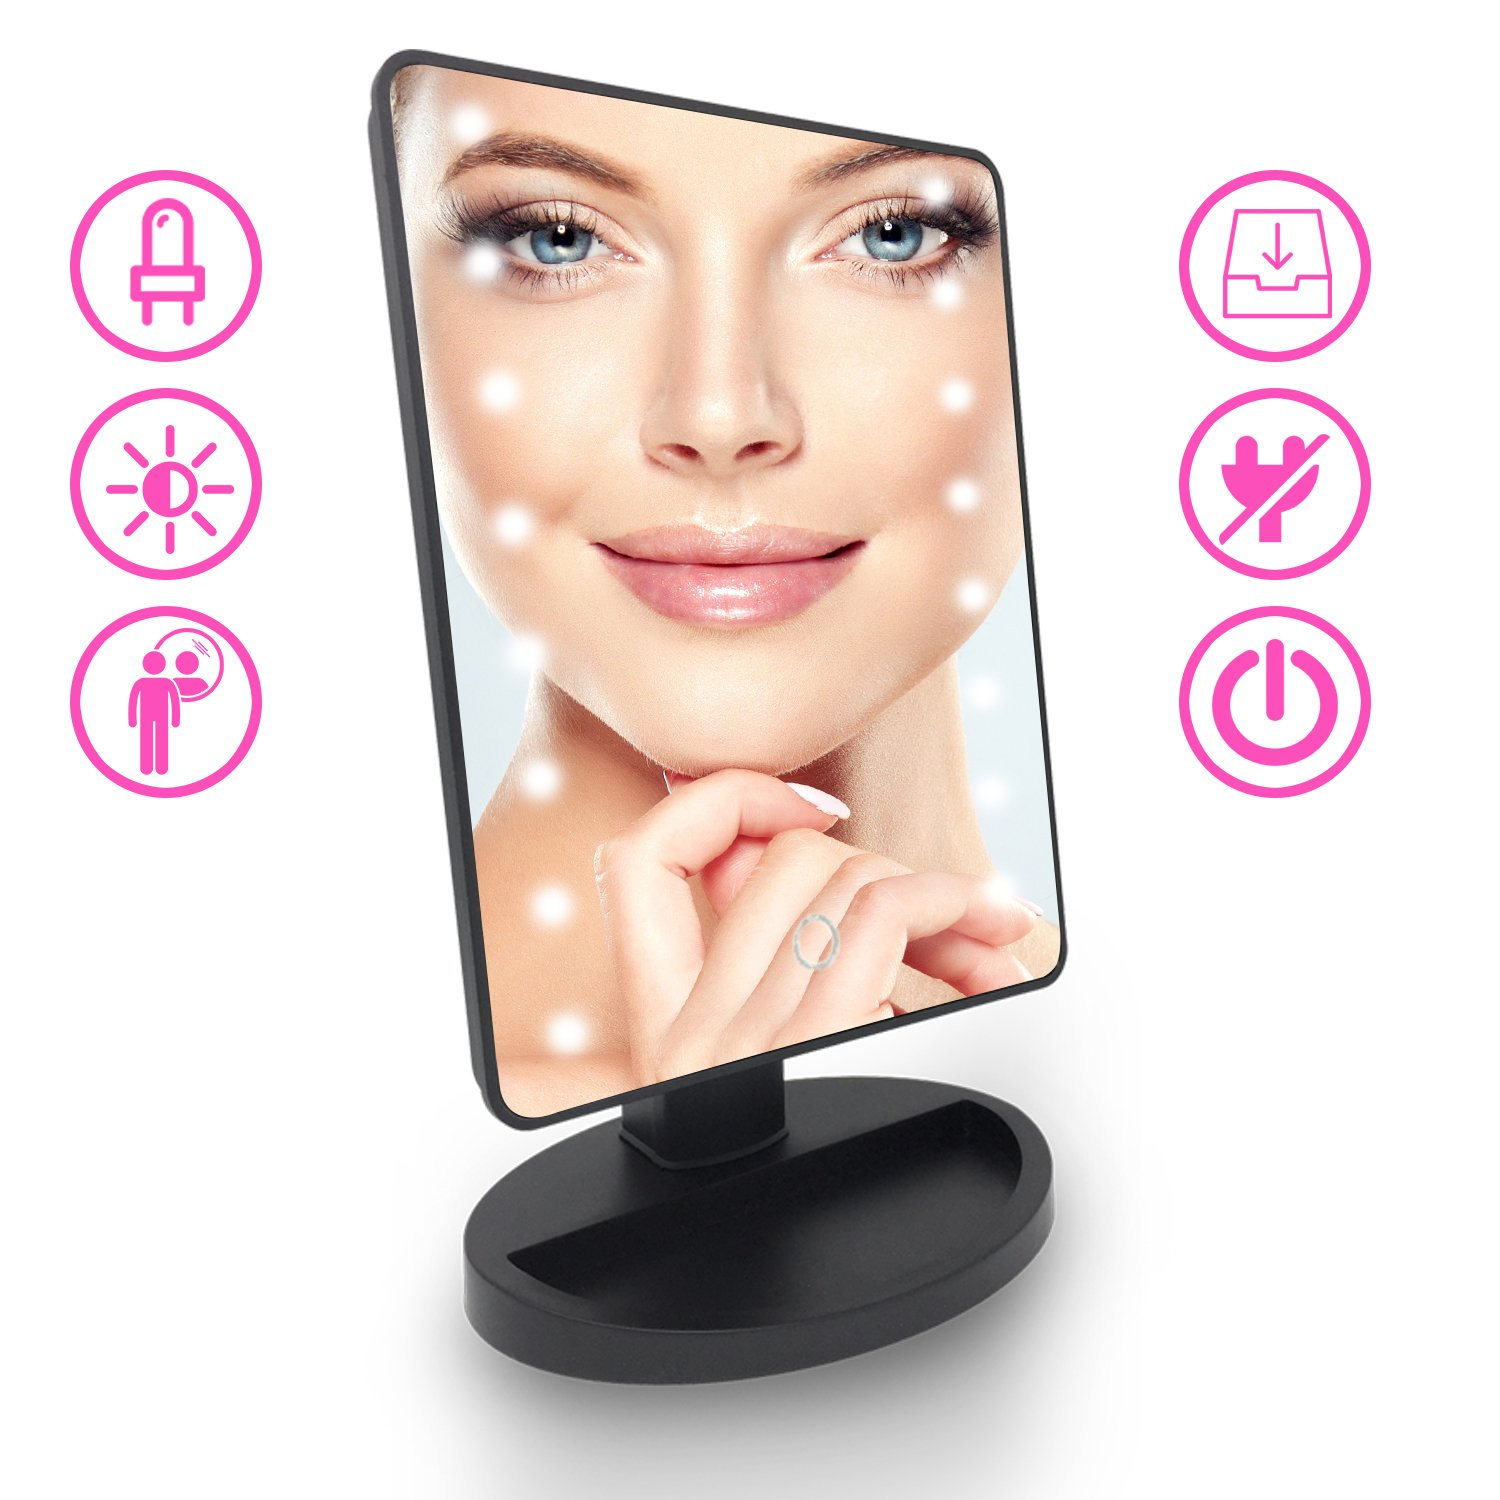 Lighted Makeup Vanity Mirror with Lights – Led Light Up Travel Make Up Mirror as Hollywood Style Bathroom Cosmetic Vanity Mirrors – Perfect Gift Idea for Every Woman, Girls